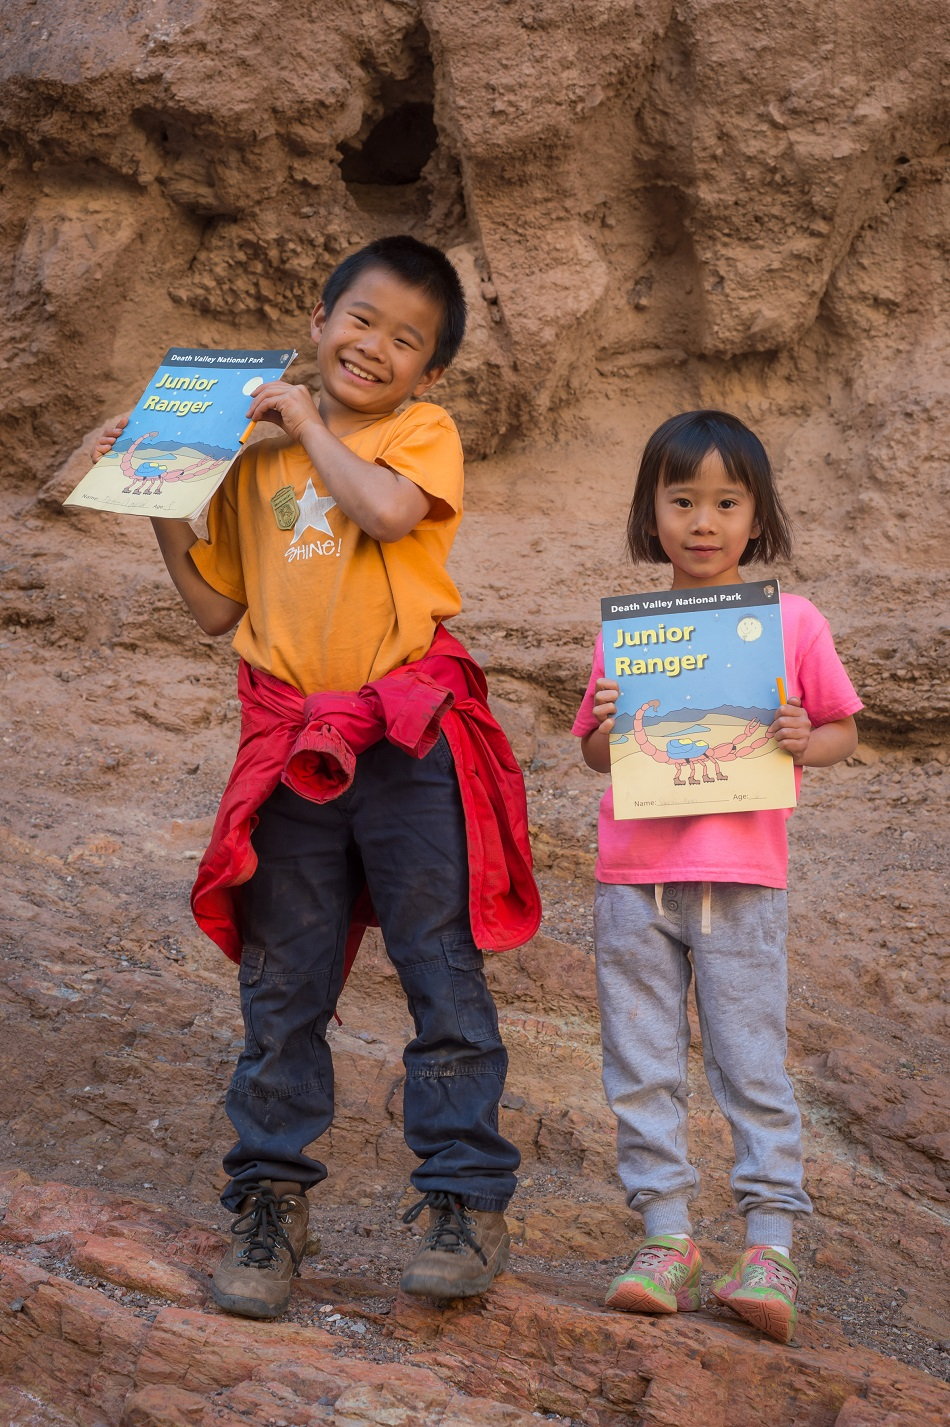 Children with Junior Ranger books.